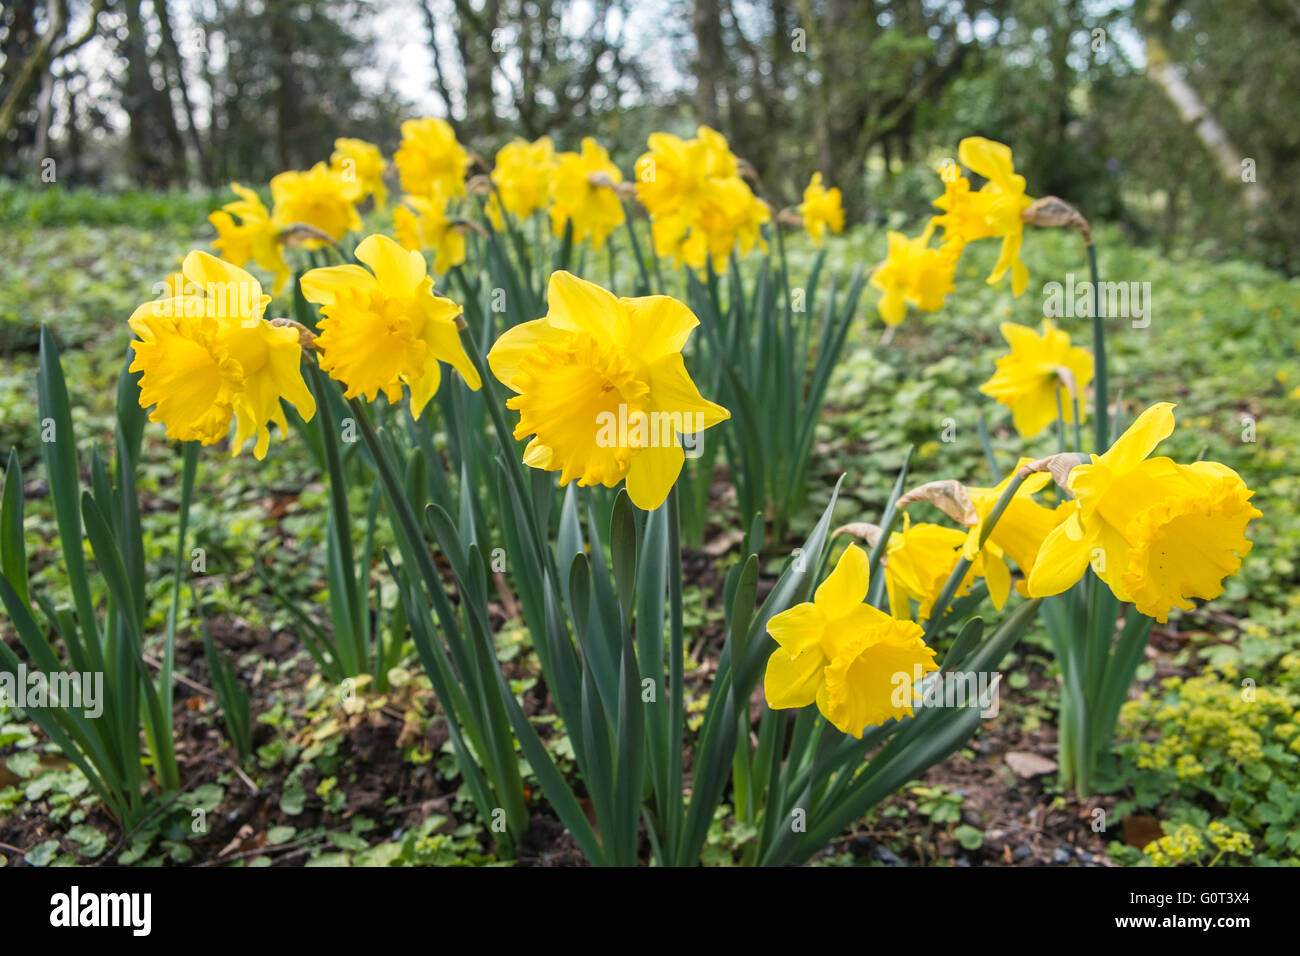 Daffodils Still In Bloom In May Very Late In Season Blooming Stock